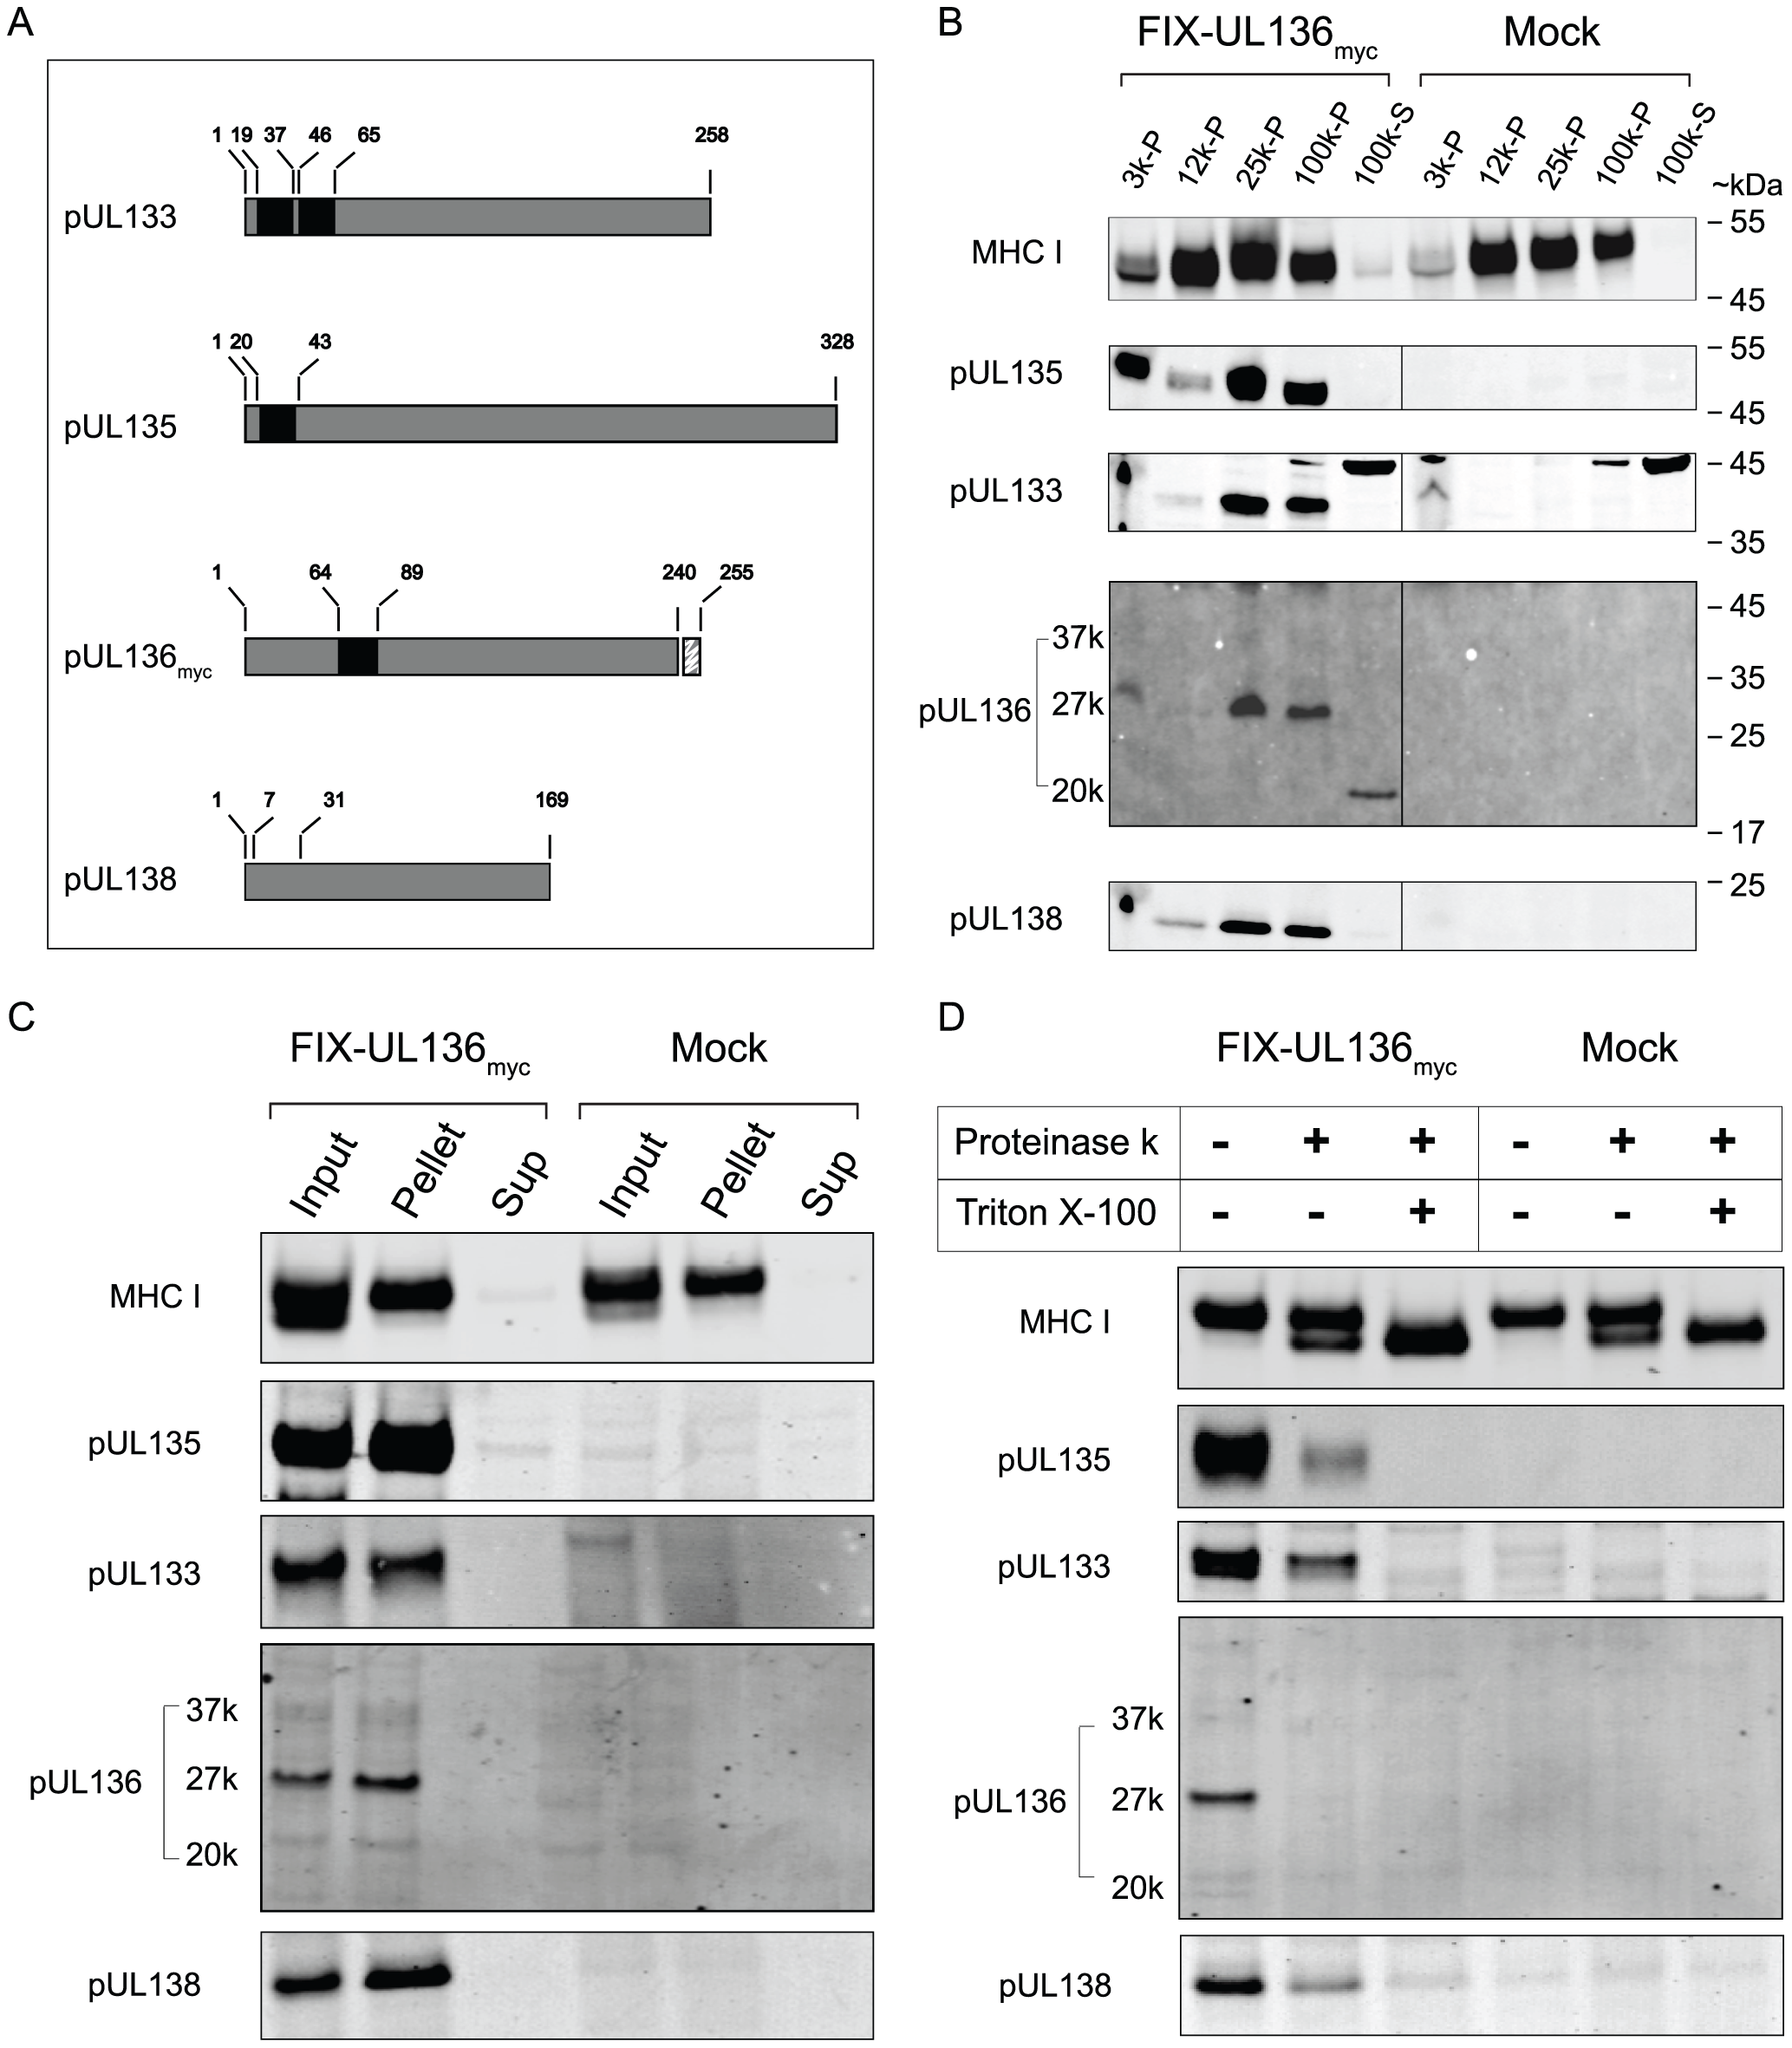 pUL133, pUL135, and pUL136 are integral membrane proteins associated with microsomal membranes.